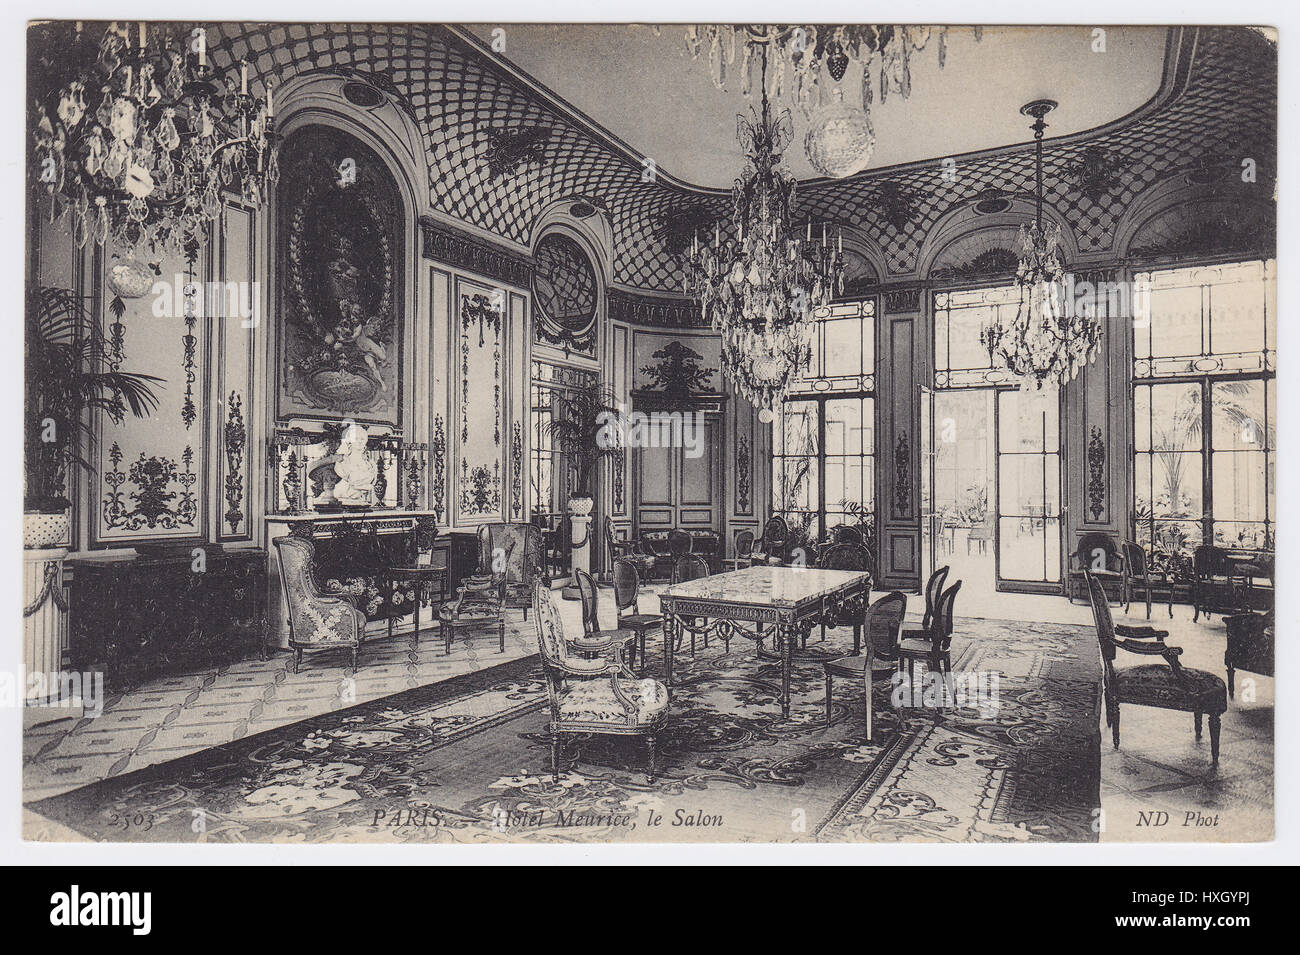 Salon Vintage Paris Hotel Meurice Paris France Salon Pompadour Stock Photo